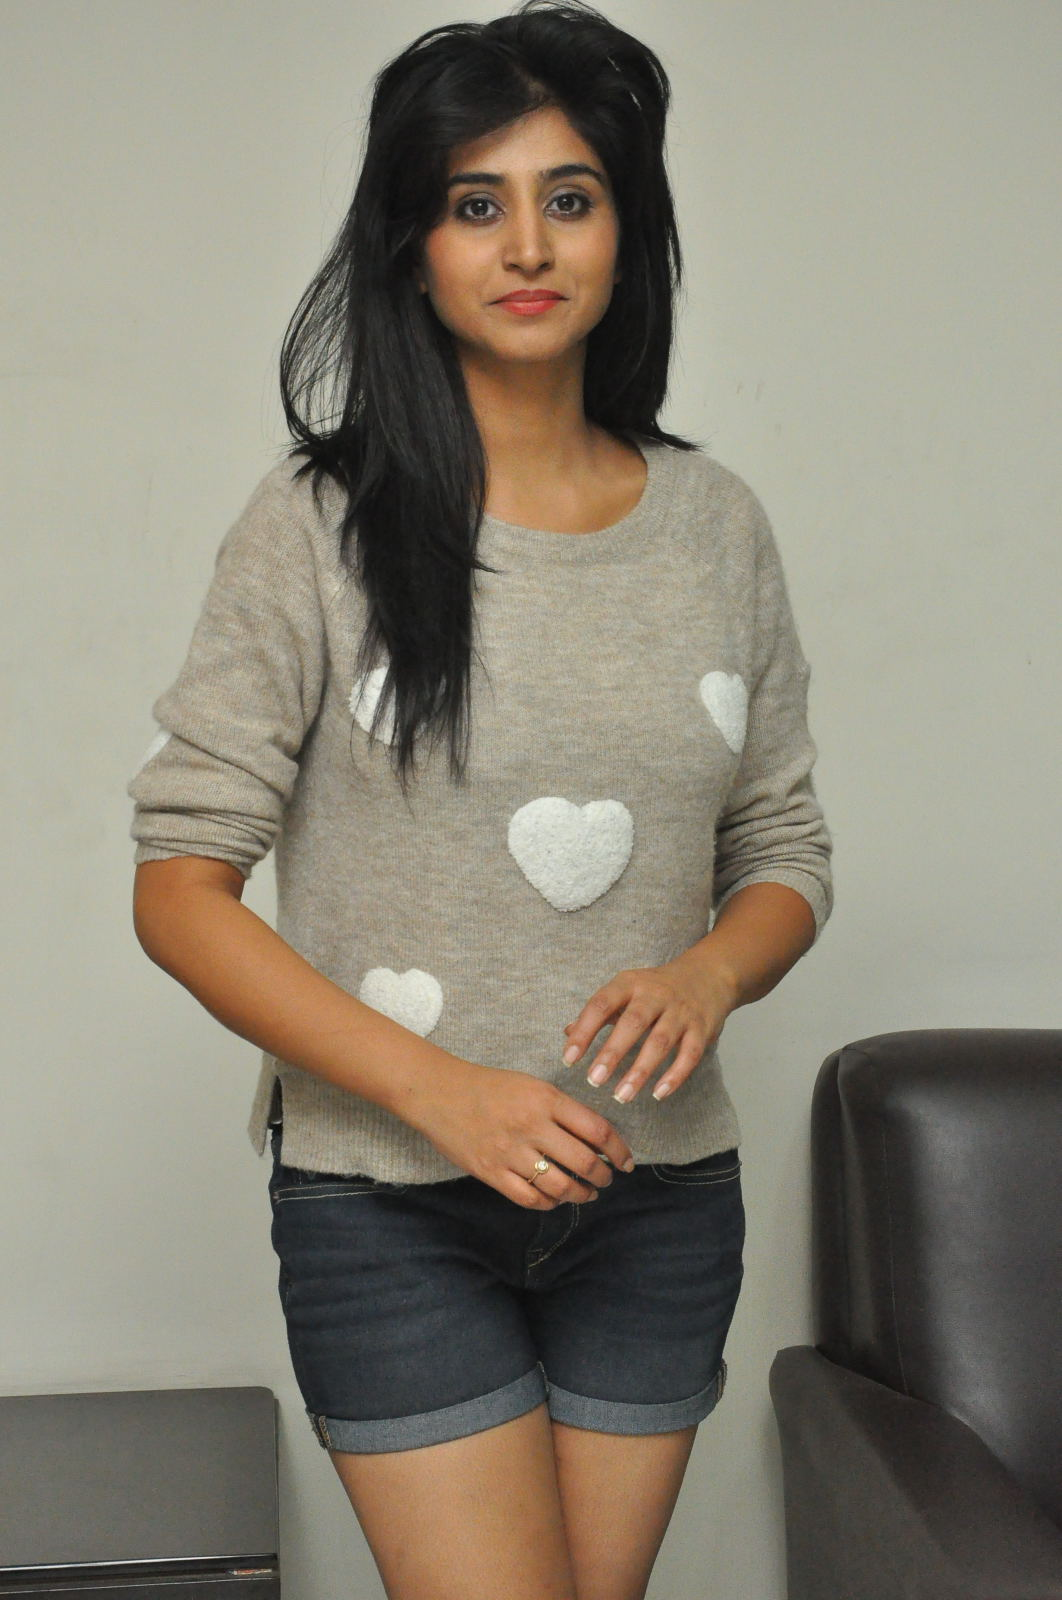 Shamili new cute photos gallery-HQ-Photo-4